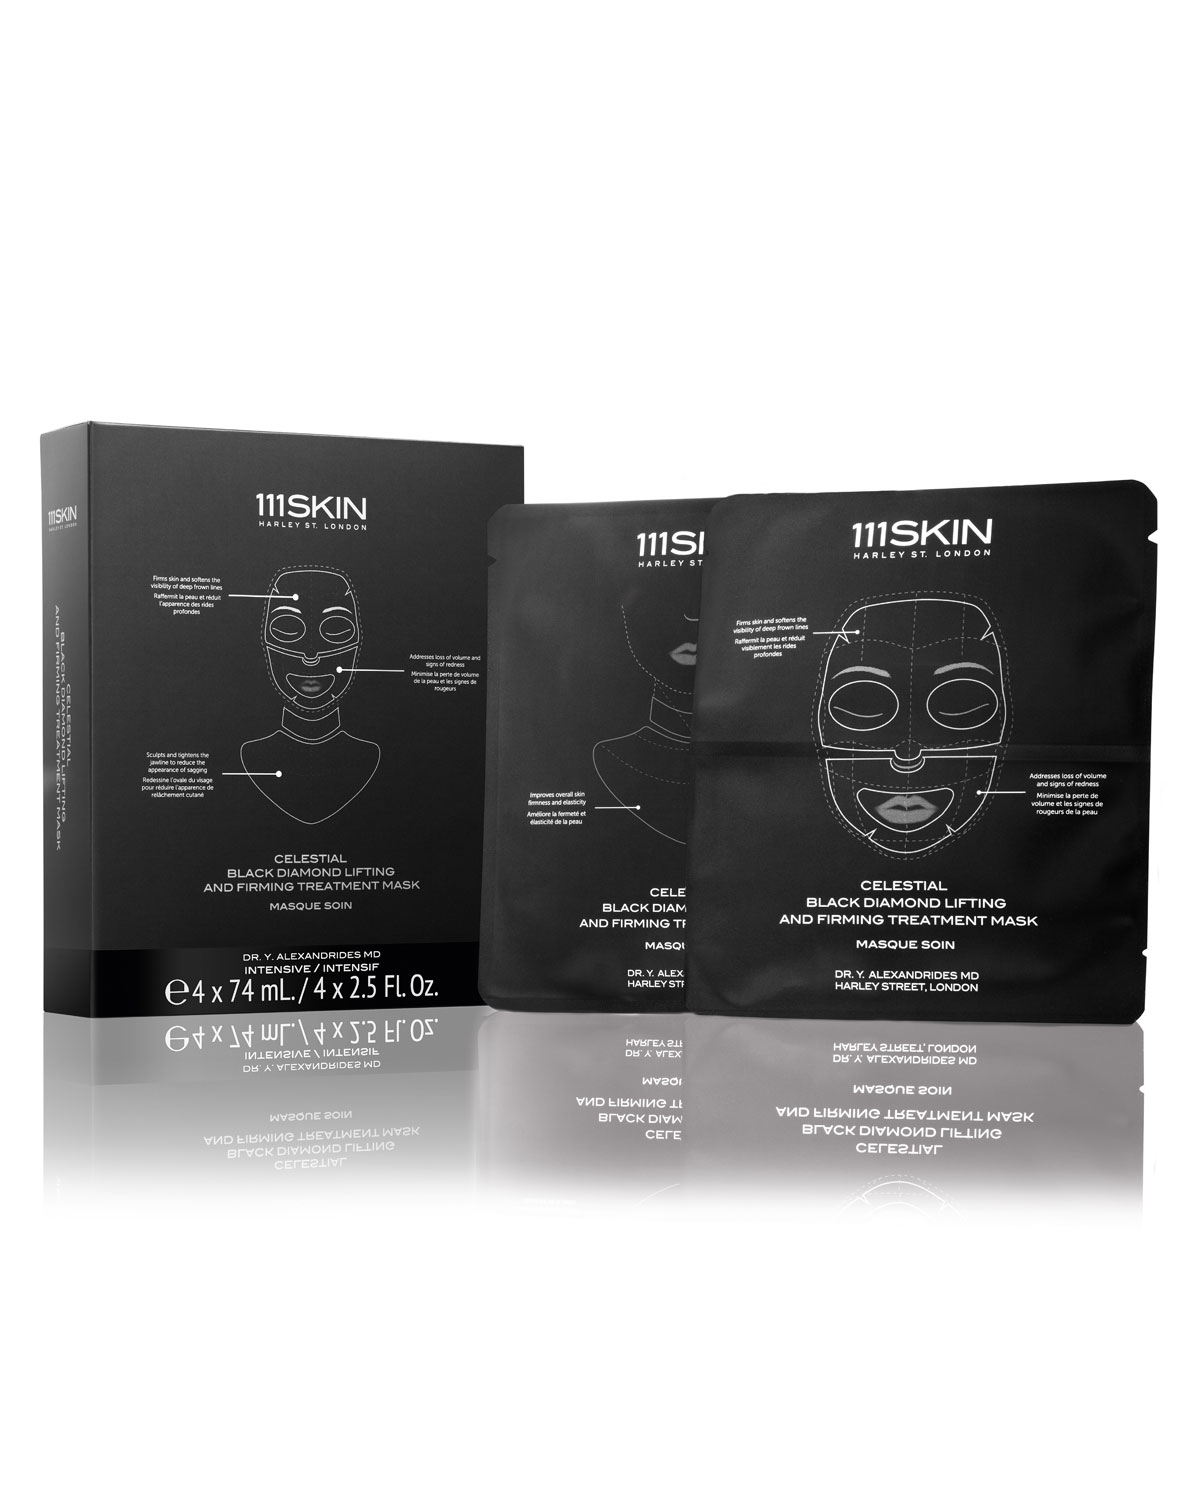 111SKIN Celestial Black Diamond Lifting and Firming Mask